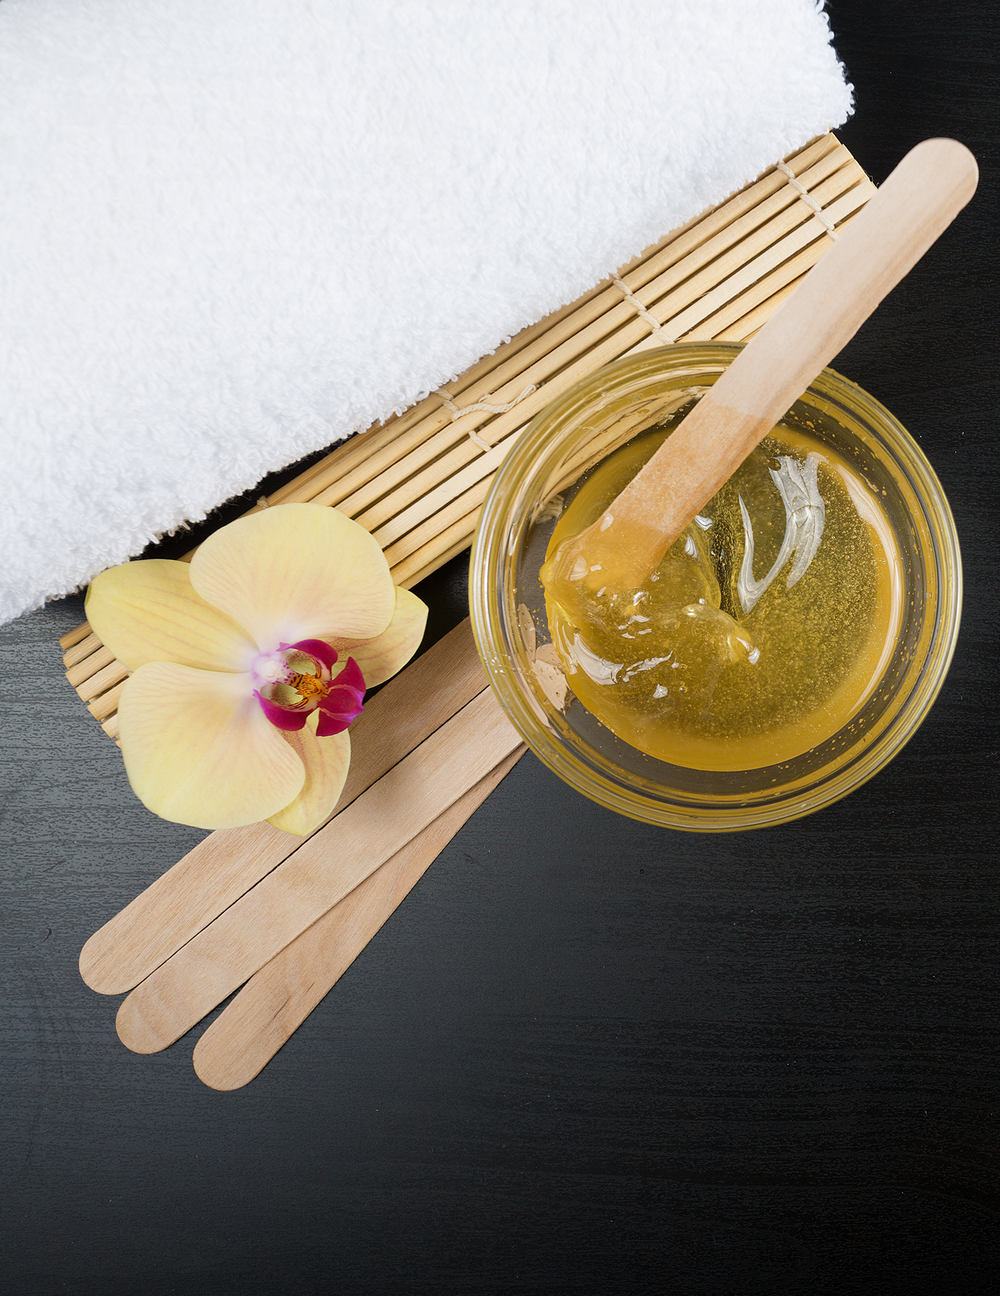 At Michael Van Clarke, we offer a discreet waxing service in our private beauty rooms with an experienced waxing therapist. Book your appointment today.